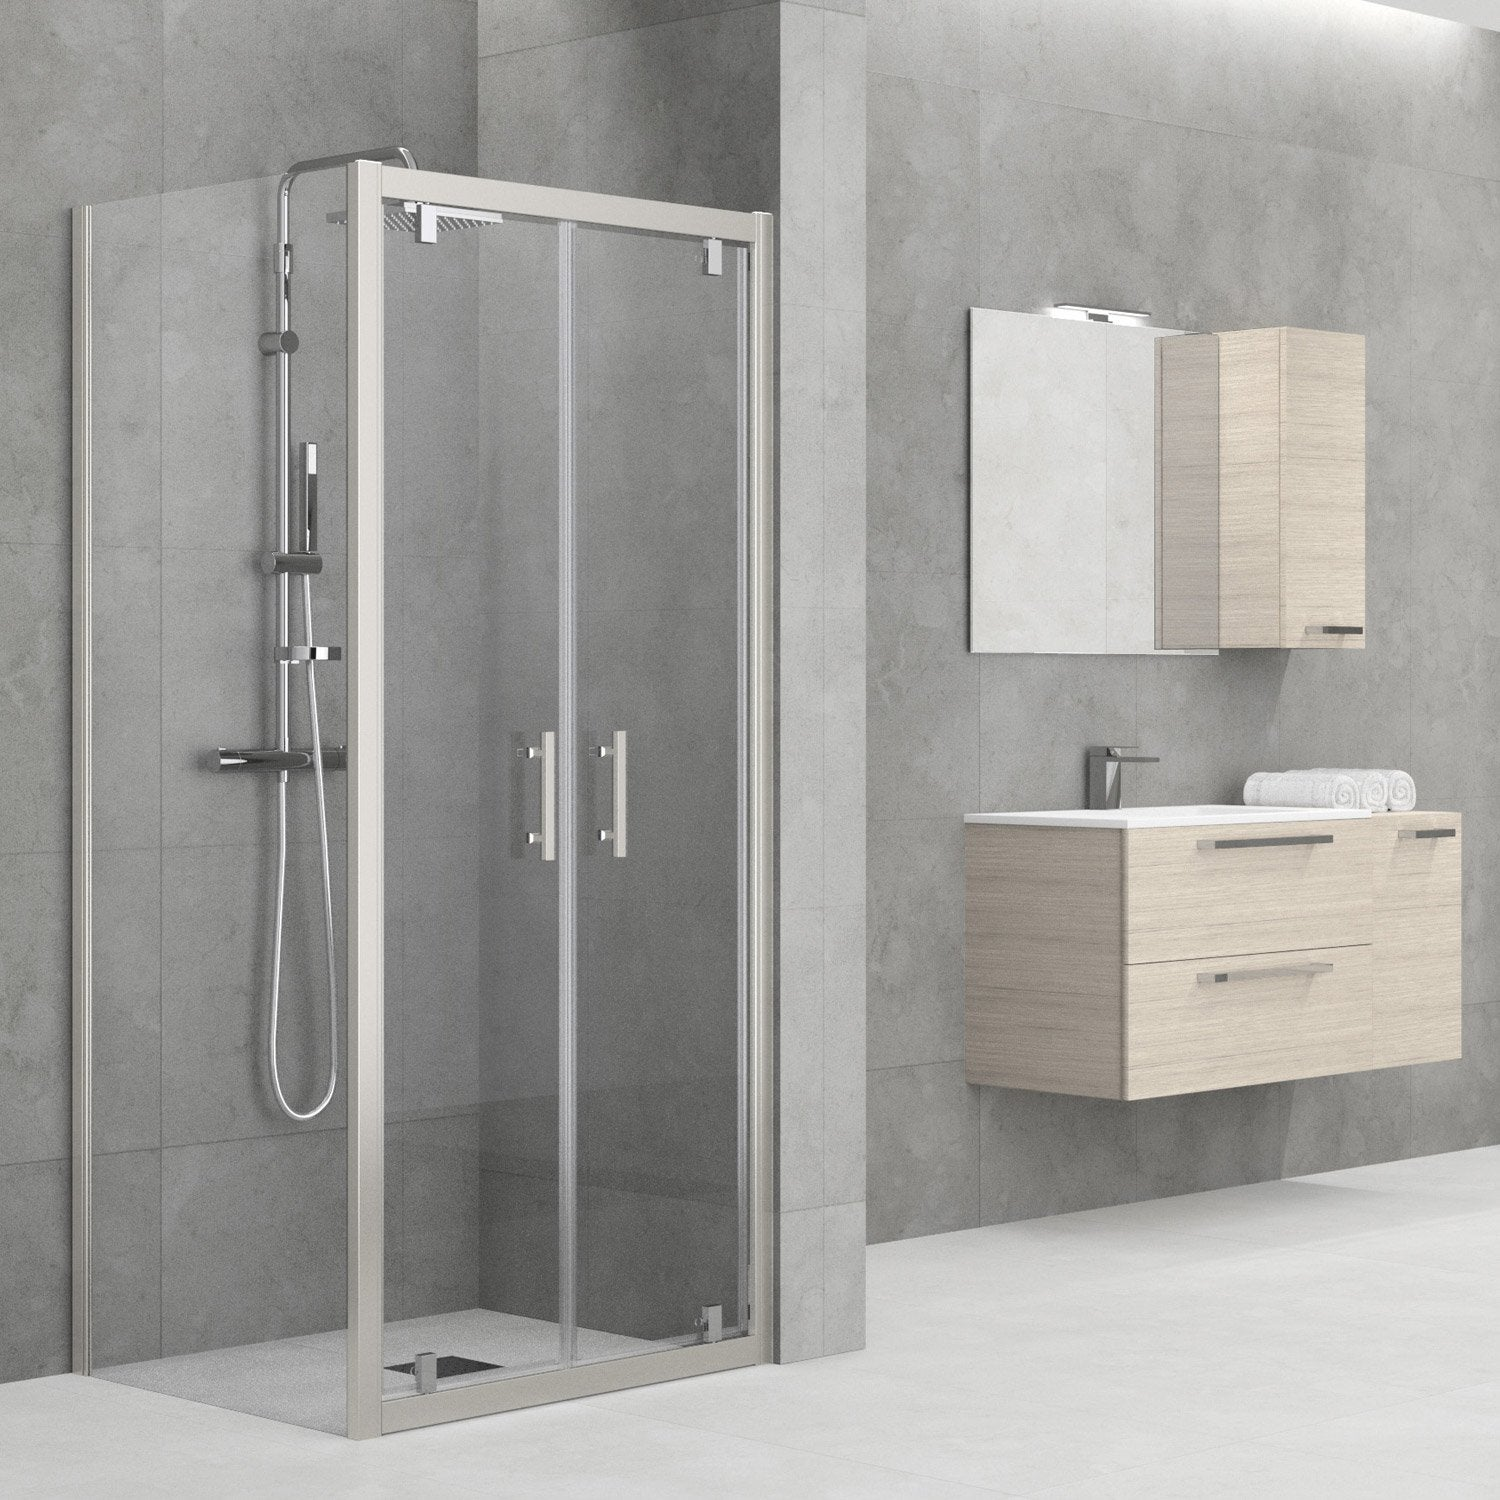 porte de douche battante 90 96 cm profil chrom elyt leroy merlin. Black Bedroom Furniture Sets. Home Design Ideas